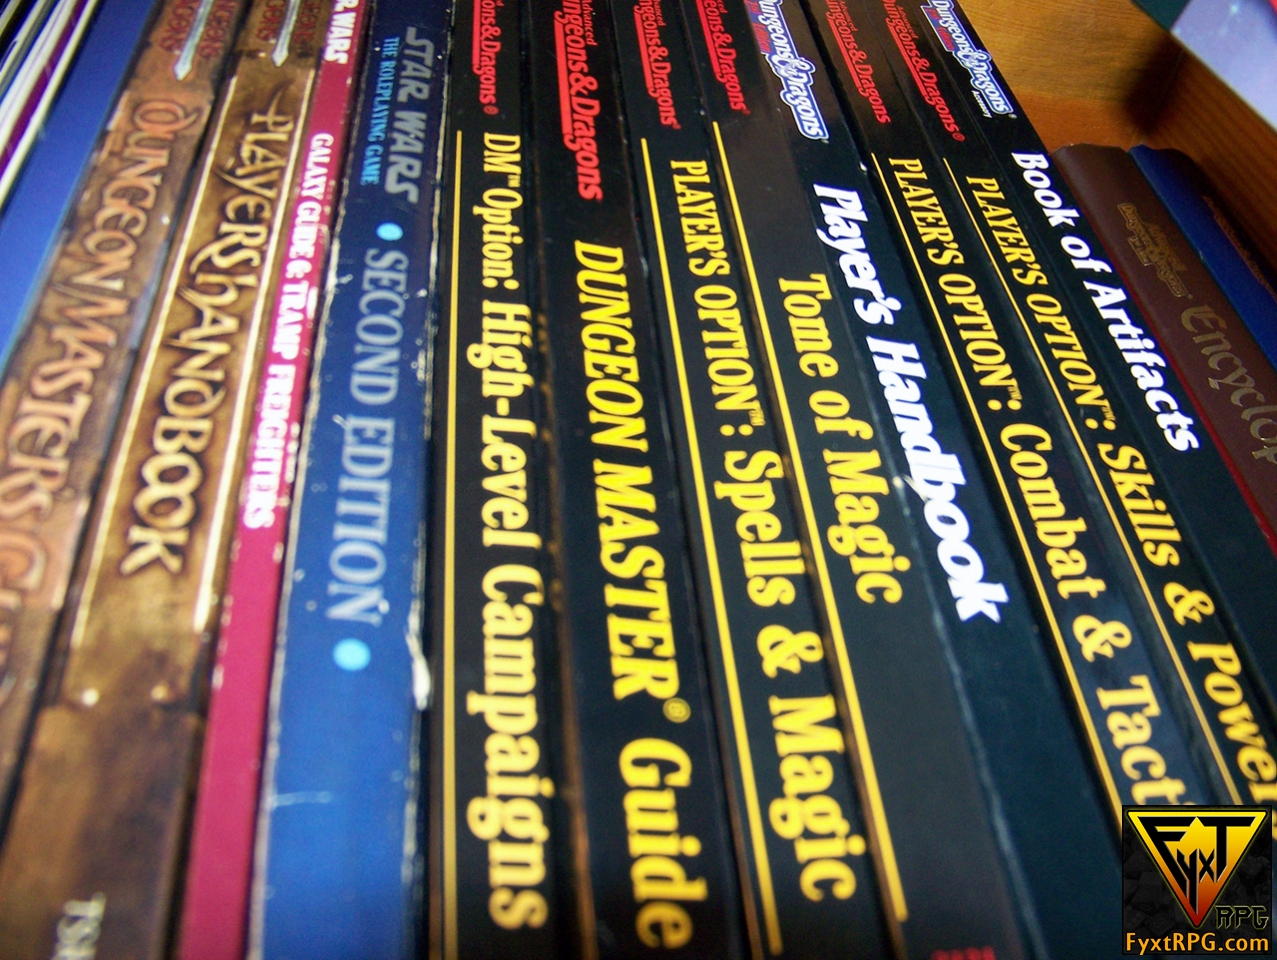 Poll & Comment Fest: How Many RPG Books Do You Own?